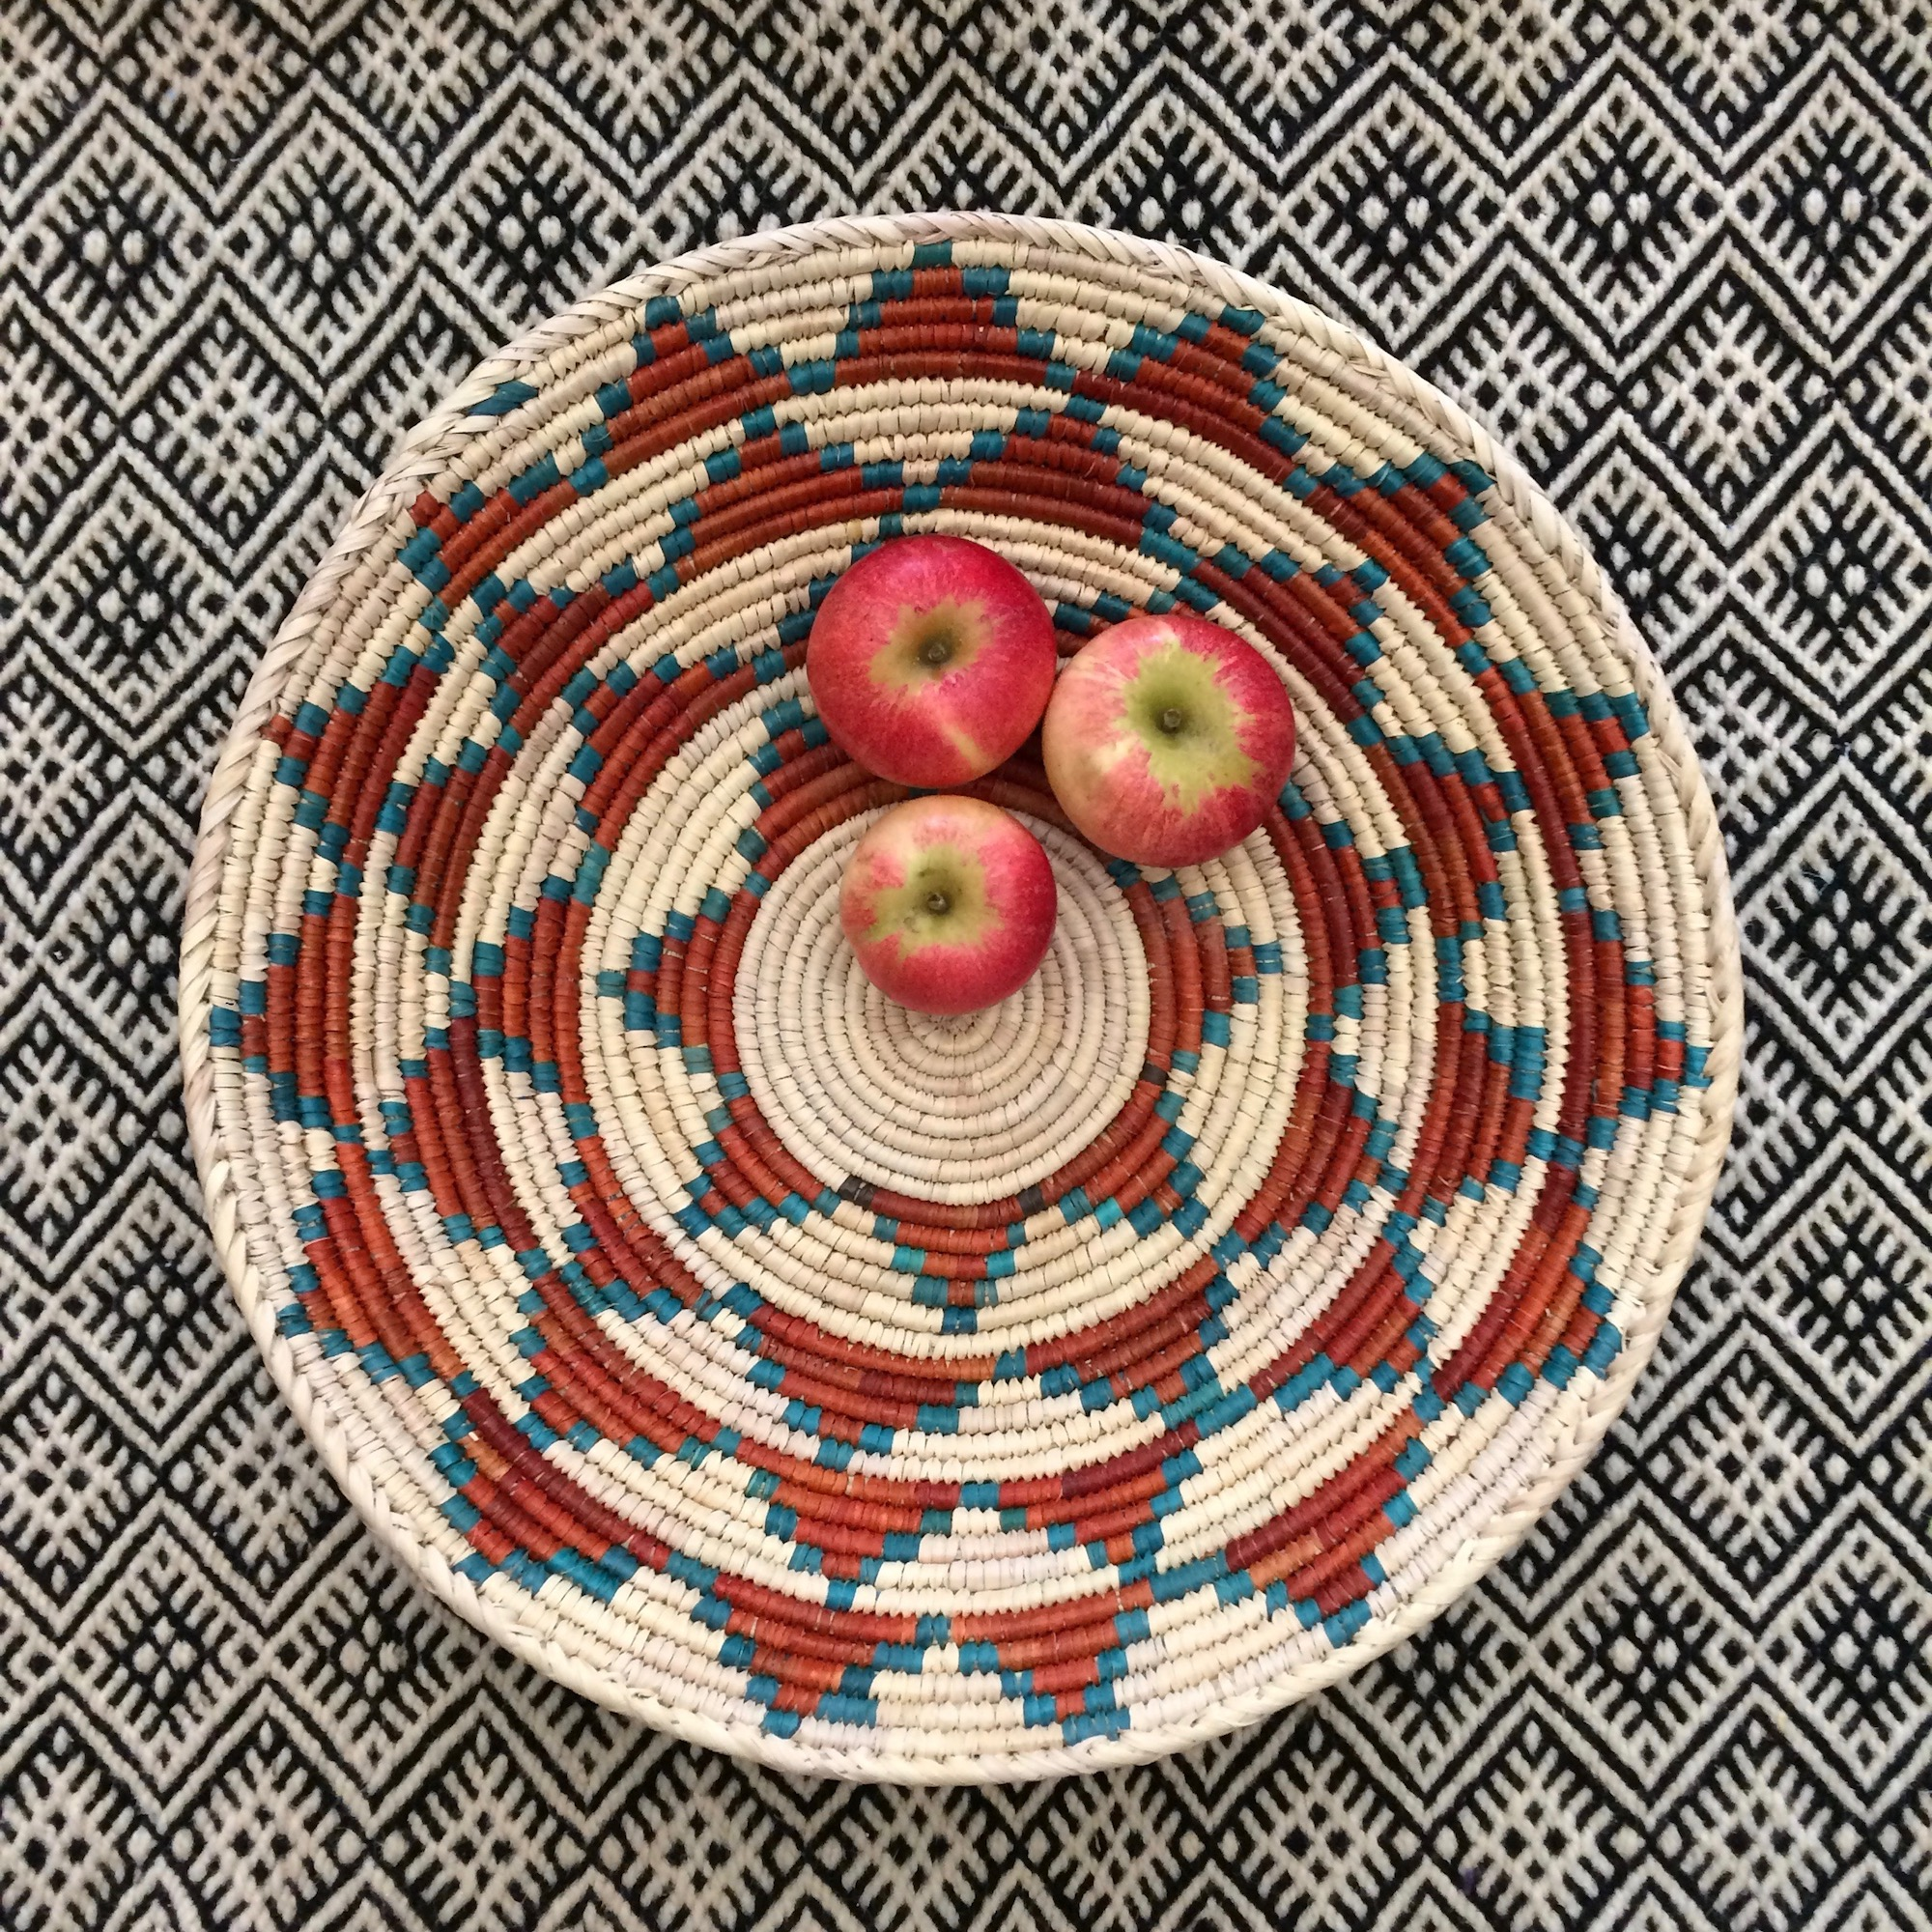 Large Handwoven Patterned Basket